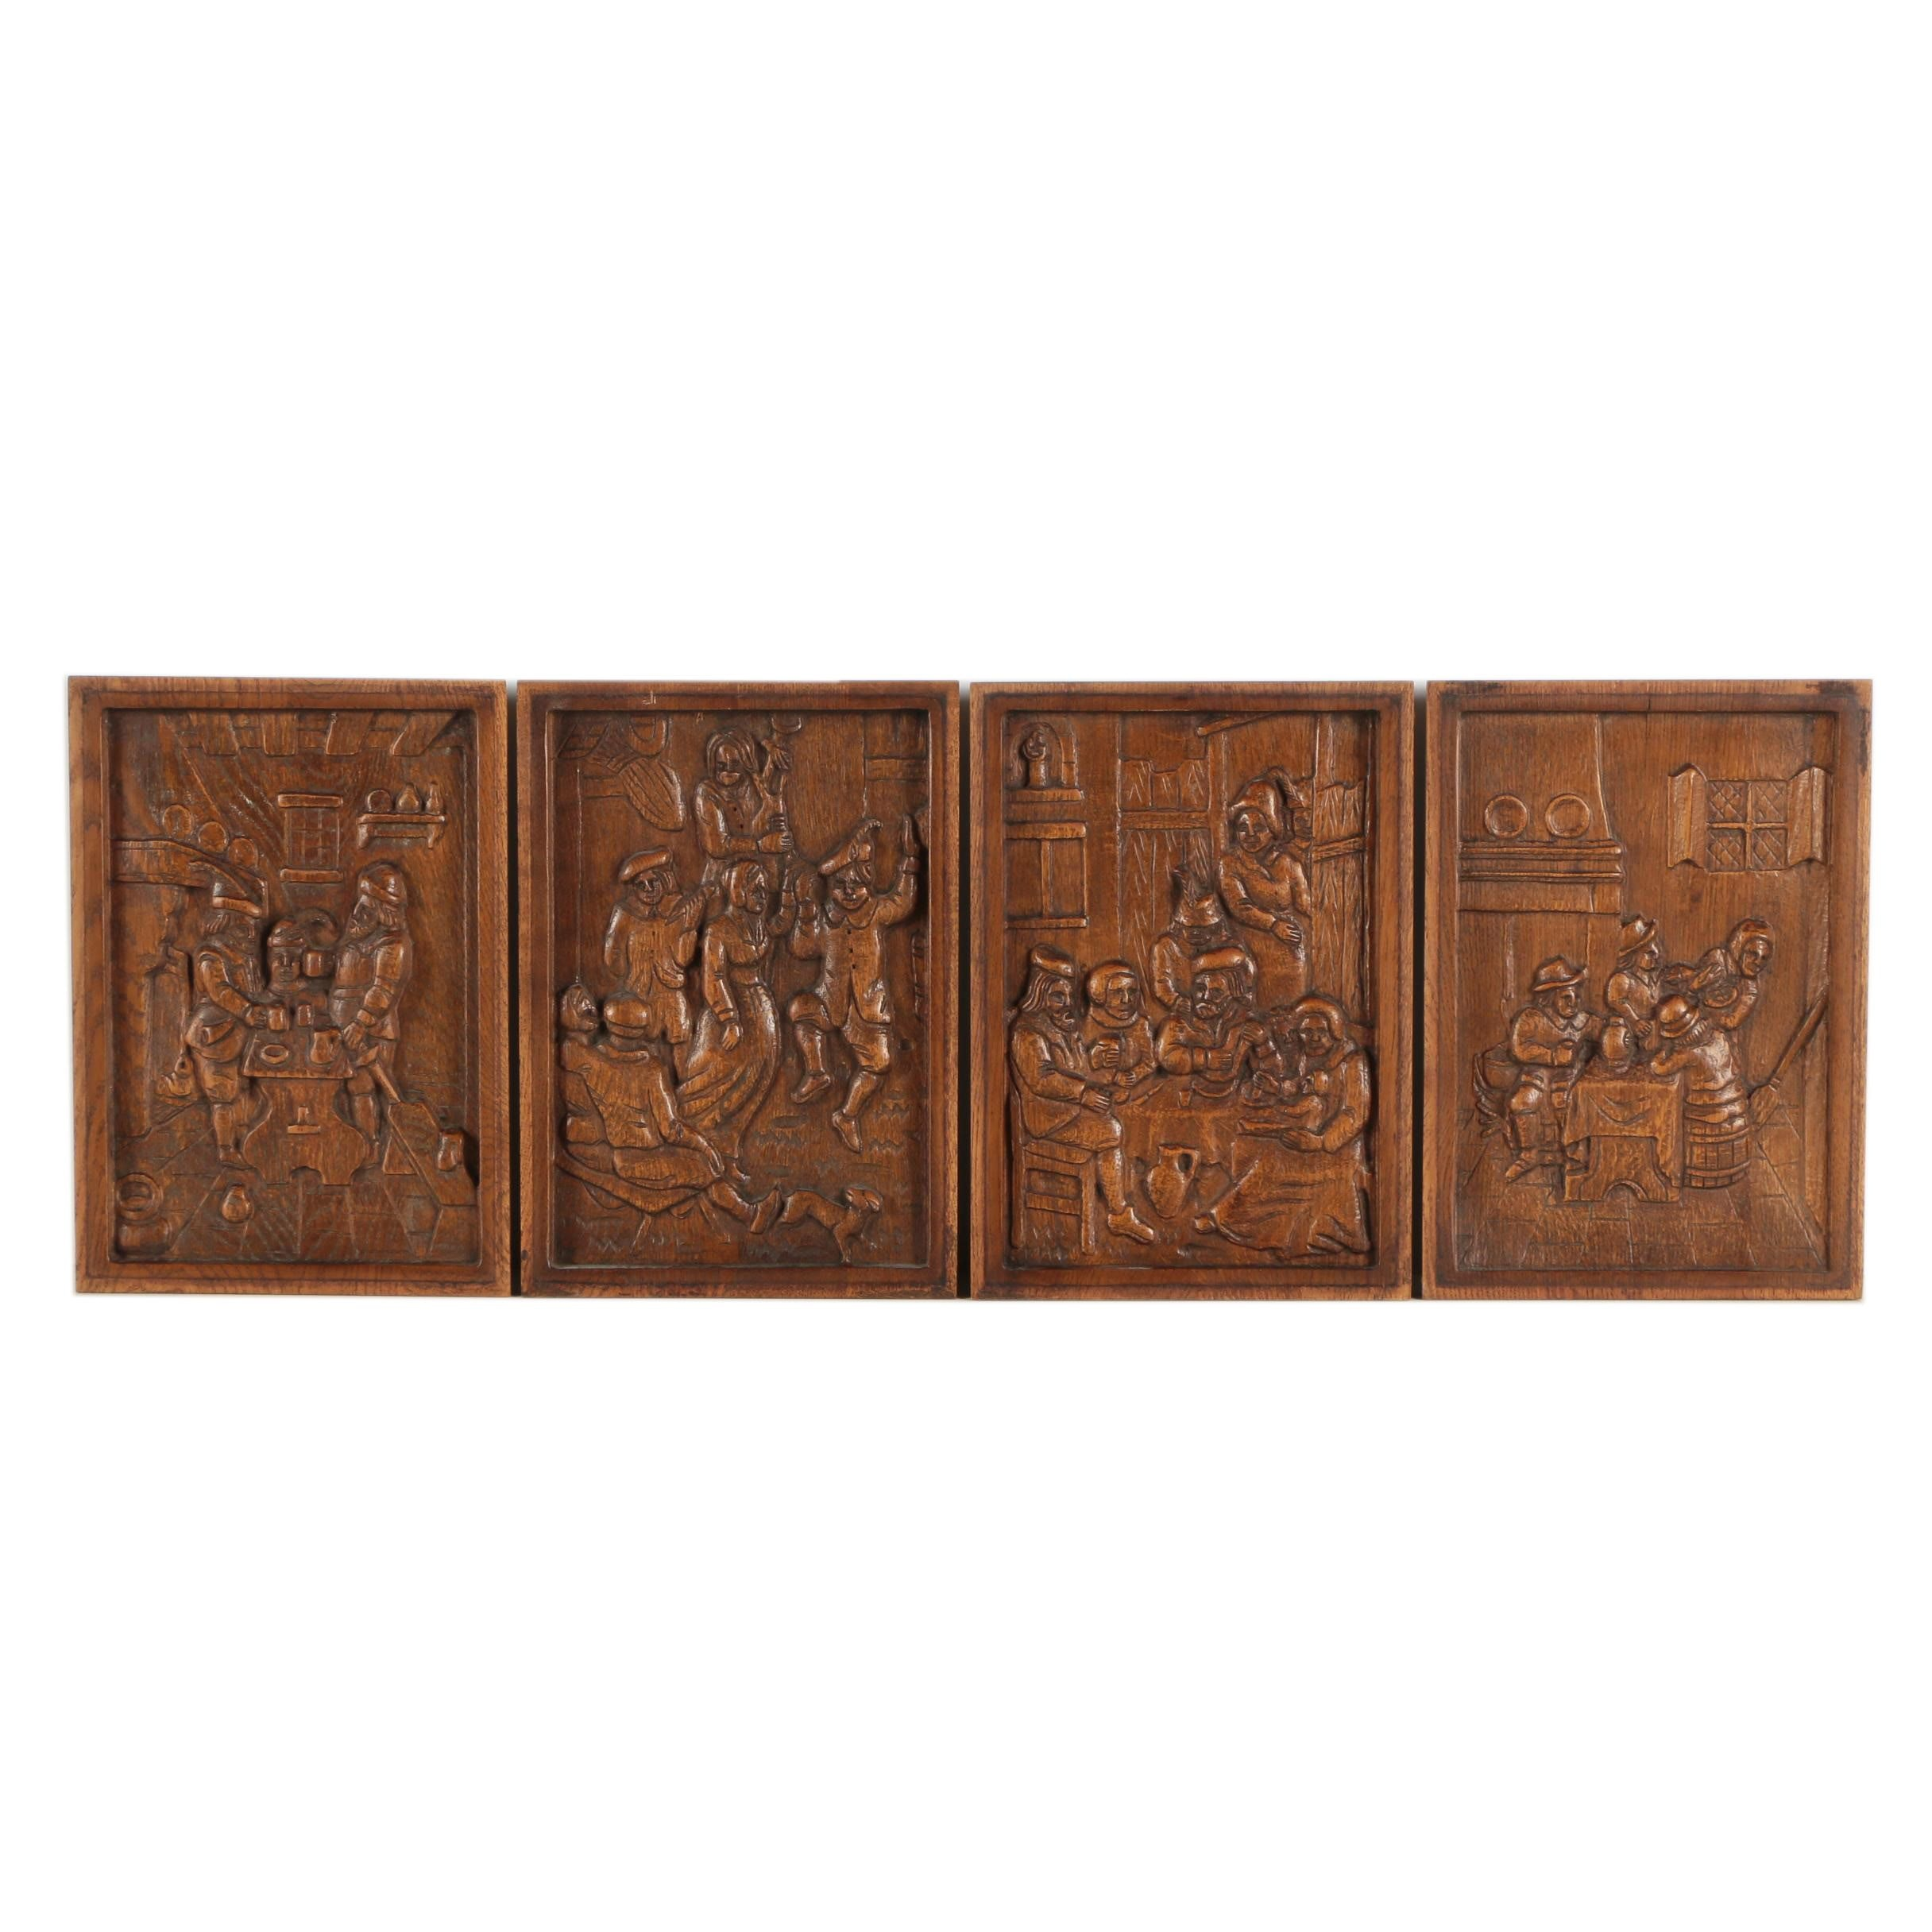 Carved Relief Panels of Tavern Scenes